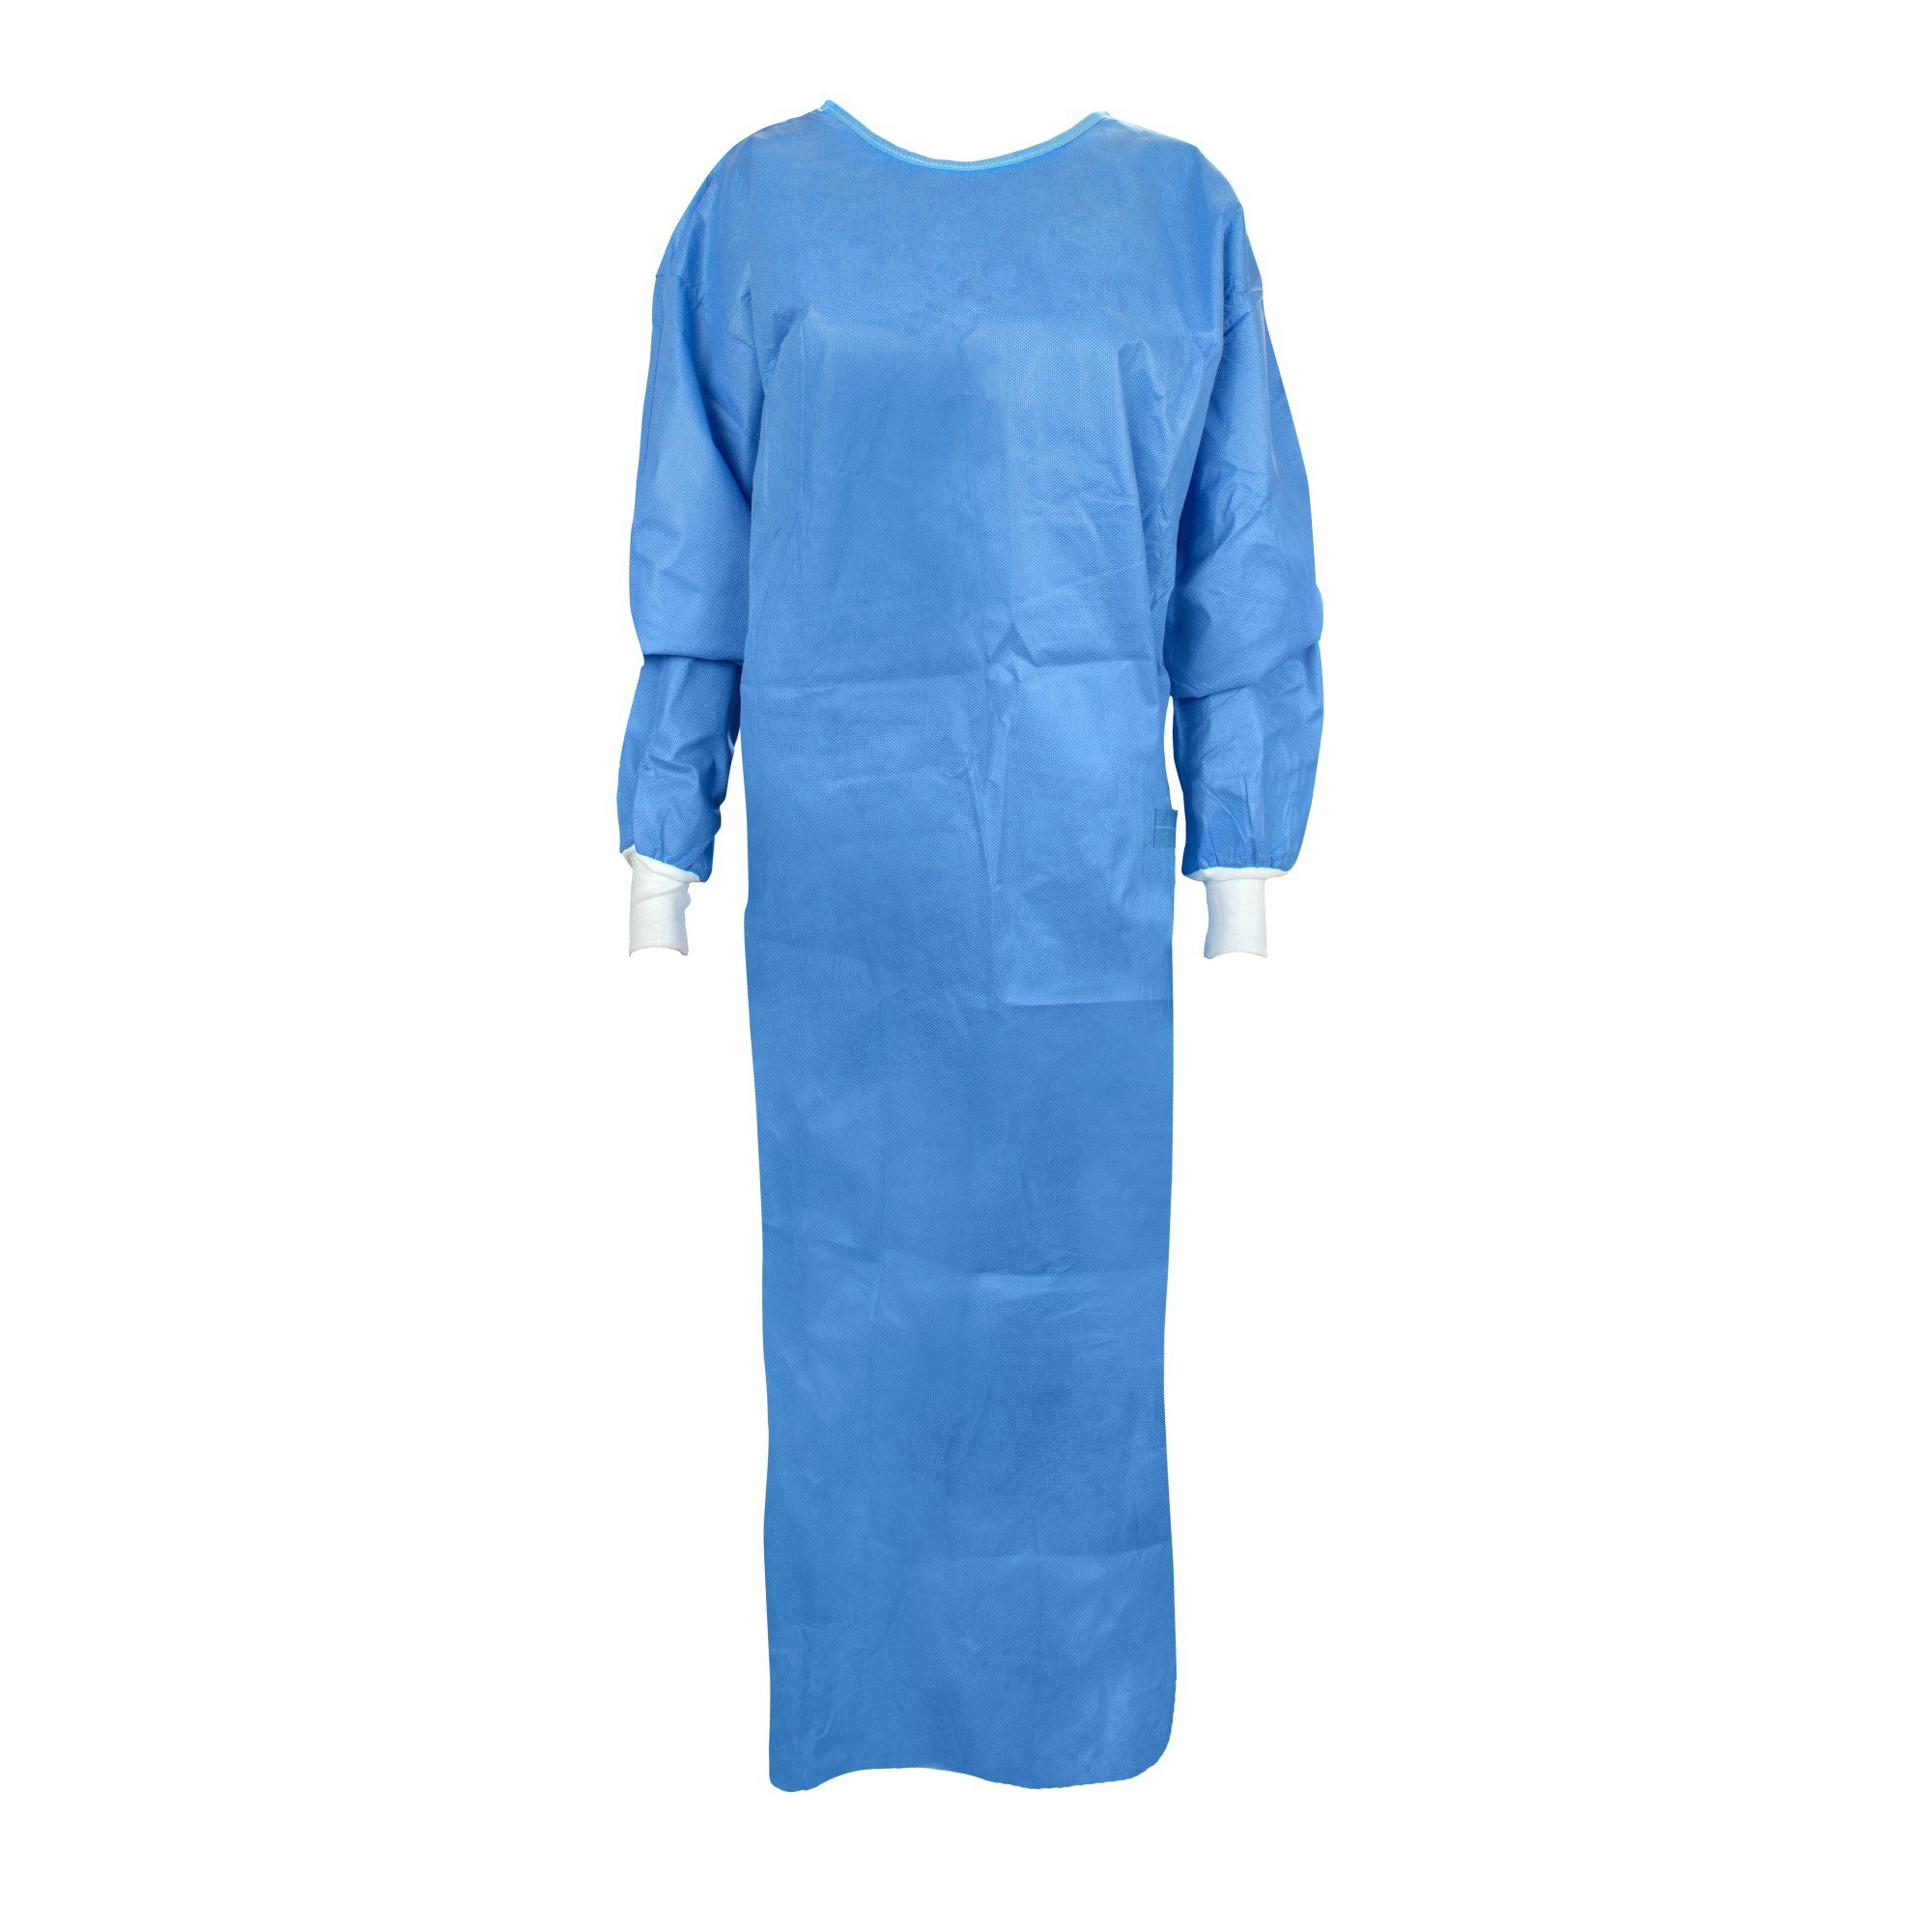 Picture of Set-in Sleeve AAMI 3 Sterile Surgical Gown, Size XL